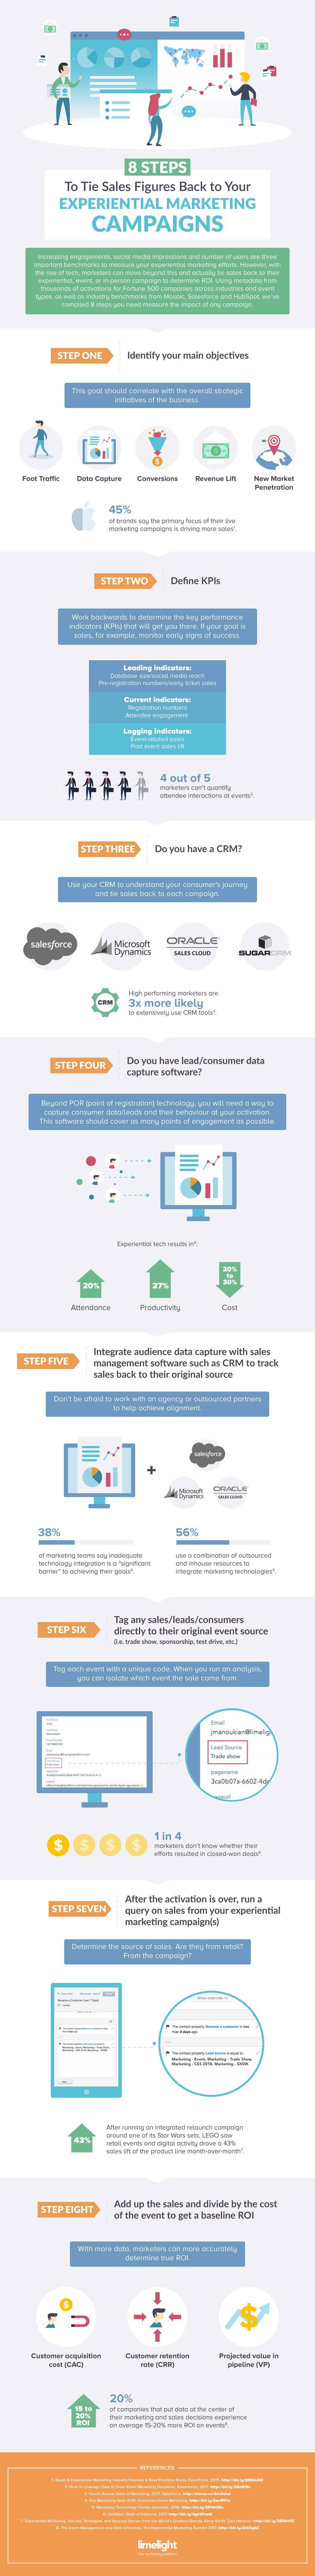 steps to tie sales figures back your experiential marketing campaigns infographic also webistries  seo on pinterest rh